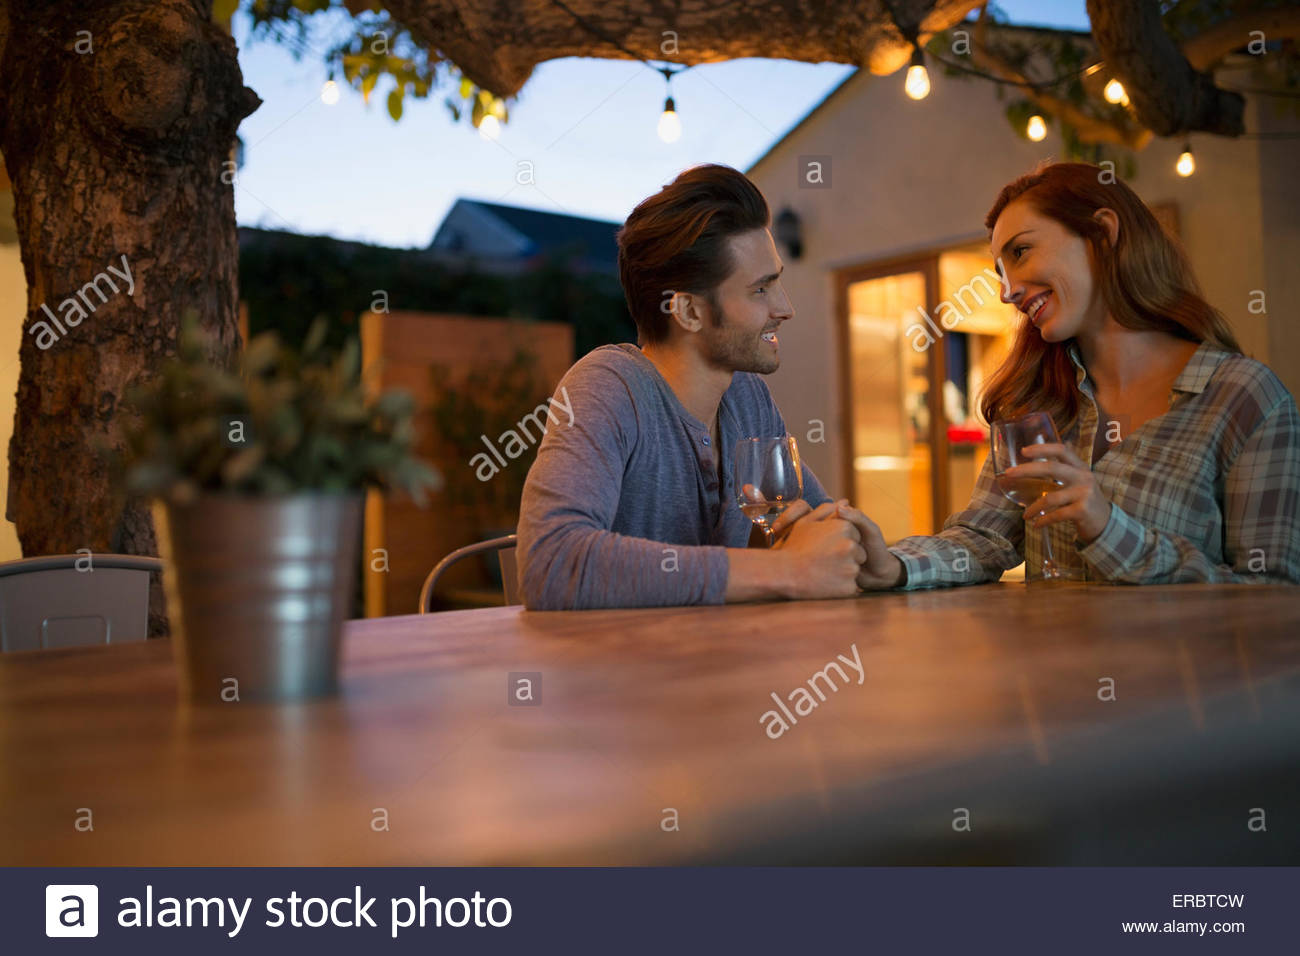 Affectionate couple drinking wine holding hands on patio - Stock Image